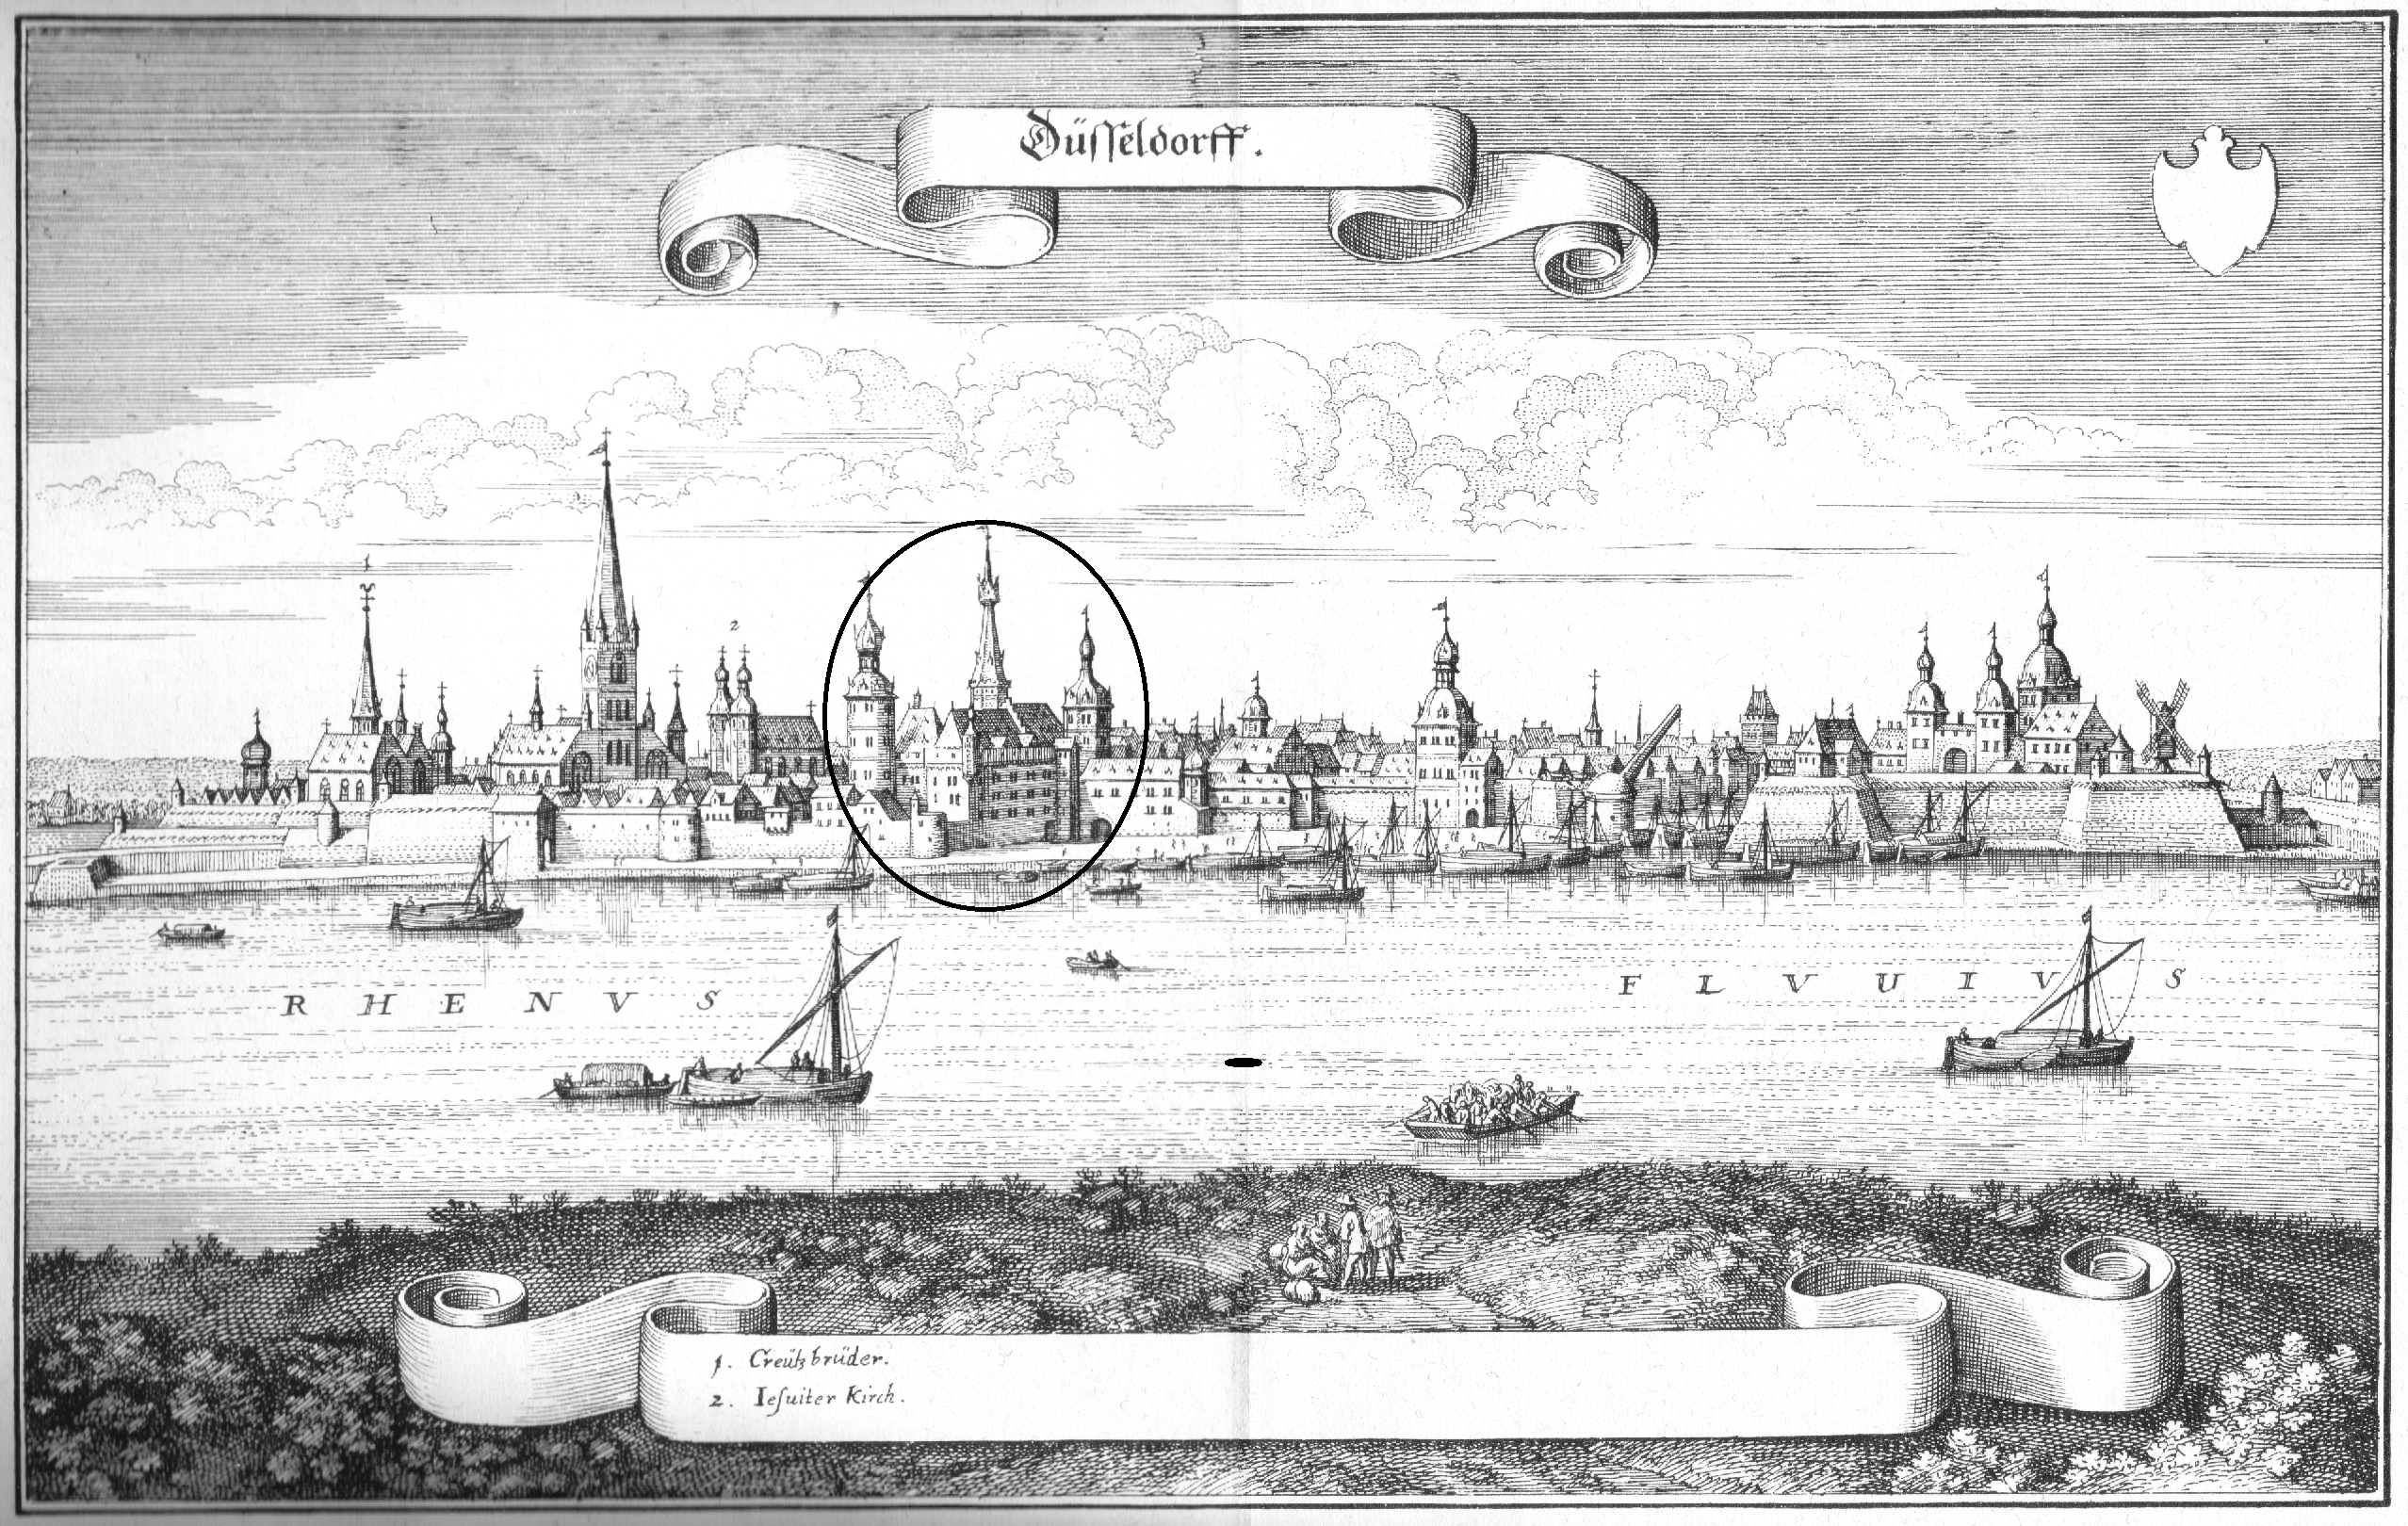 Dusseldorf, birthplace of Anne of Cleves